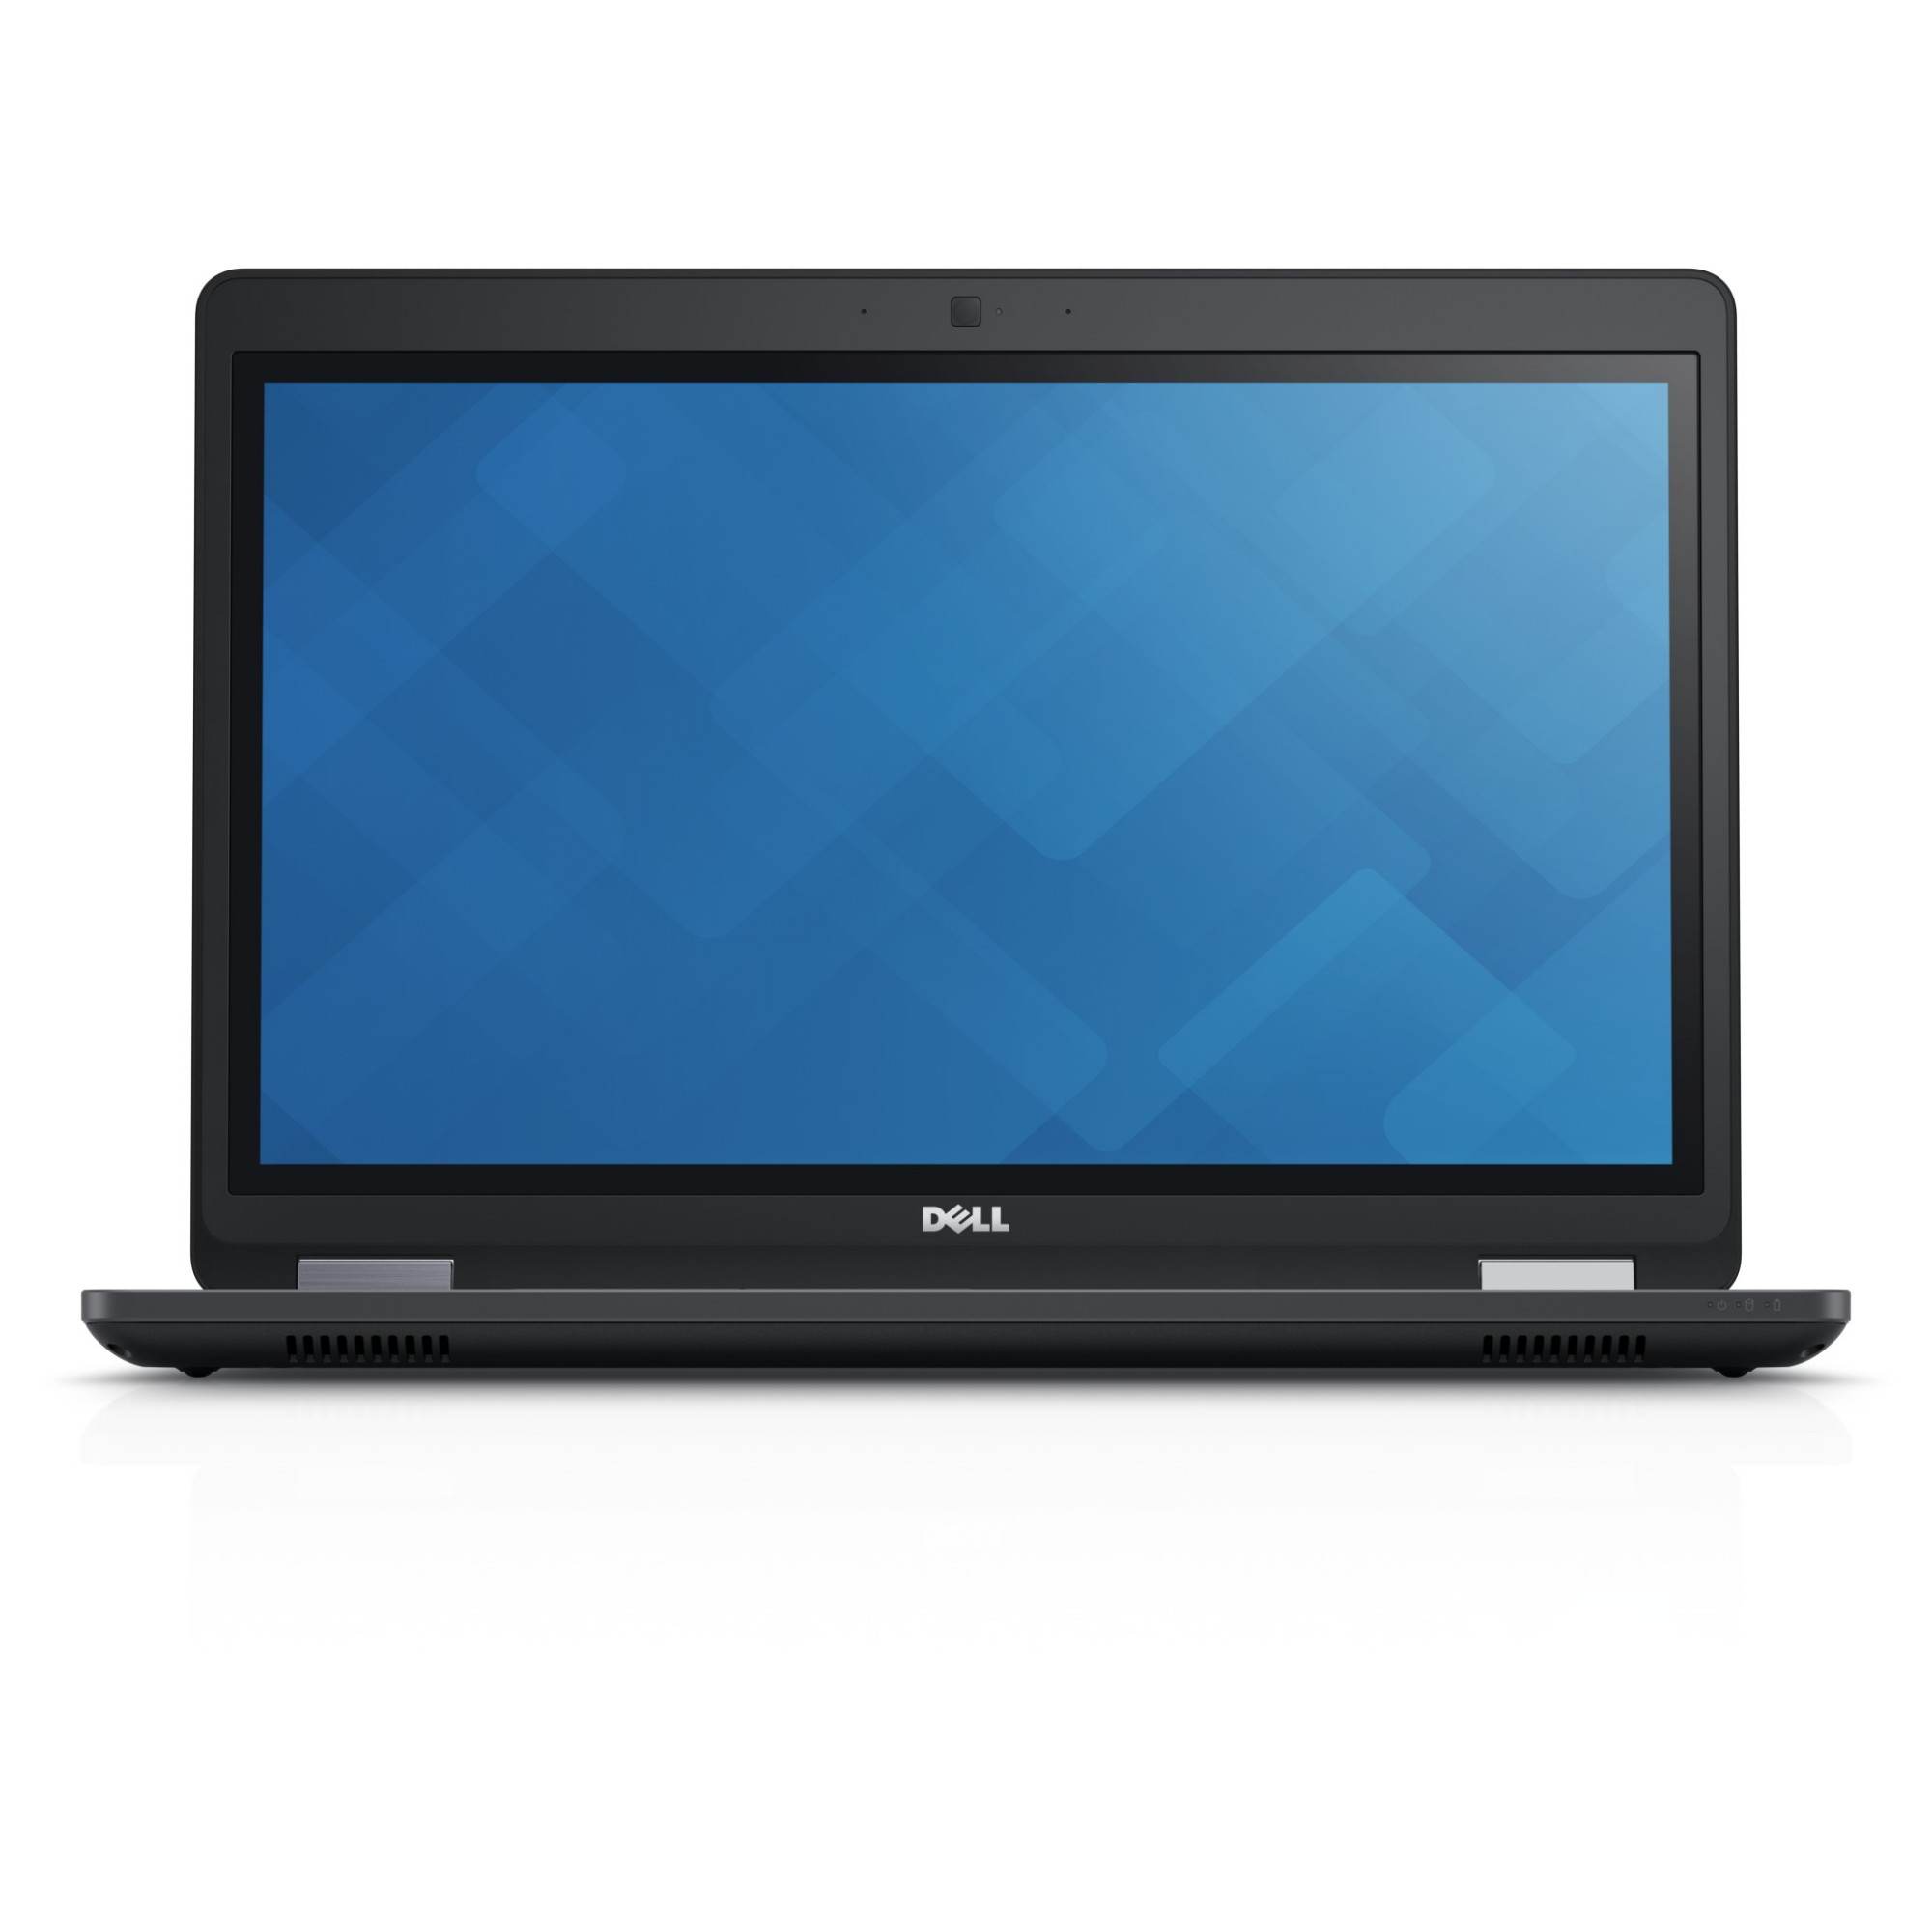 "DELL Precision M3510 2.6GHz i7-6700HQ 15.6"" 1920 x 1080pixels Black Mobile workstation"